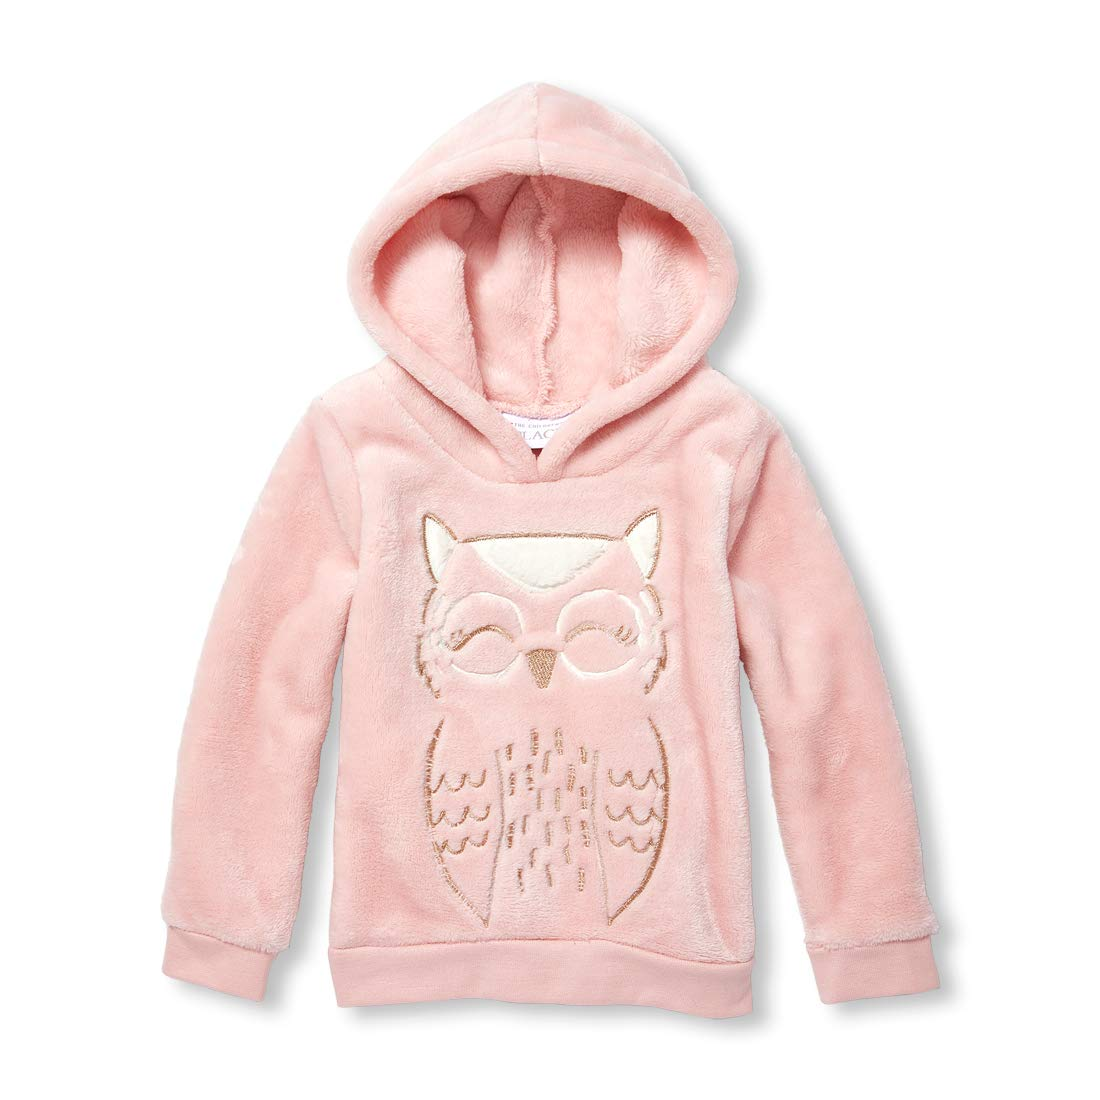 The Children's Place Baby Girls Hooded Pop Over Sweatshirt The Children' s Place 2103327